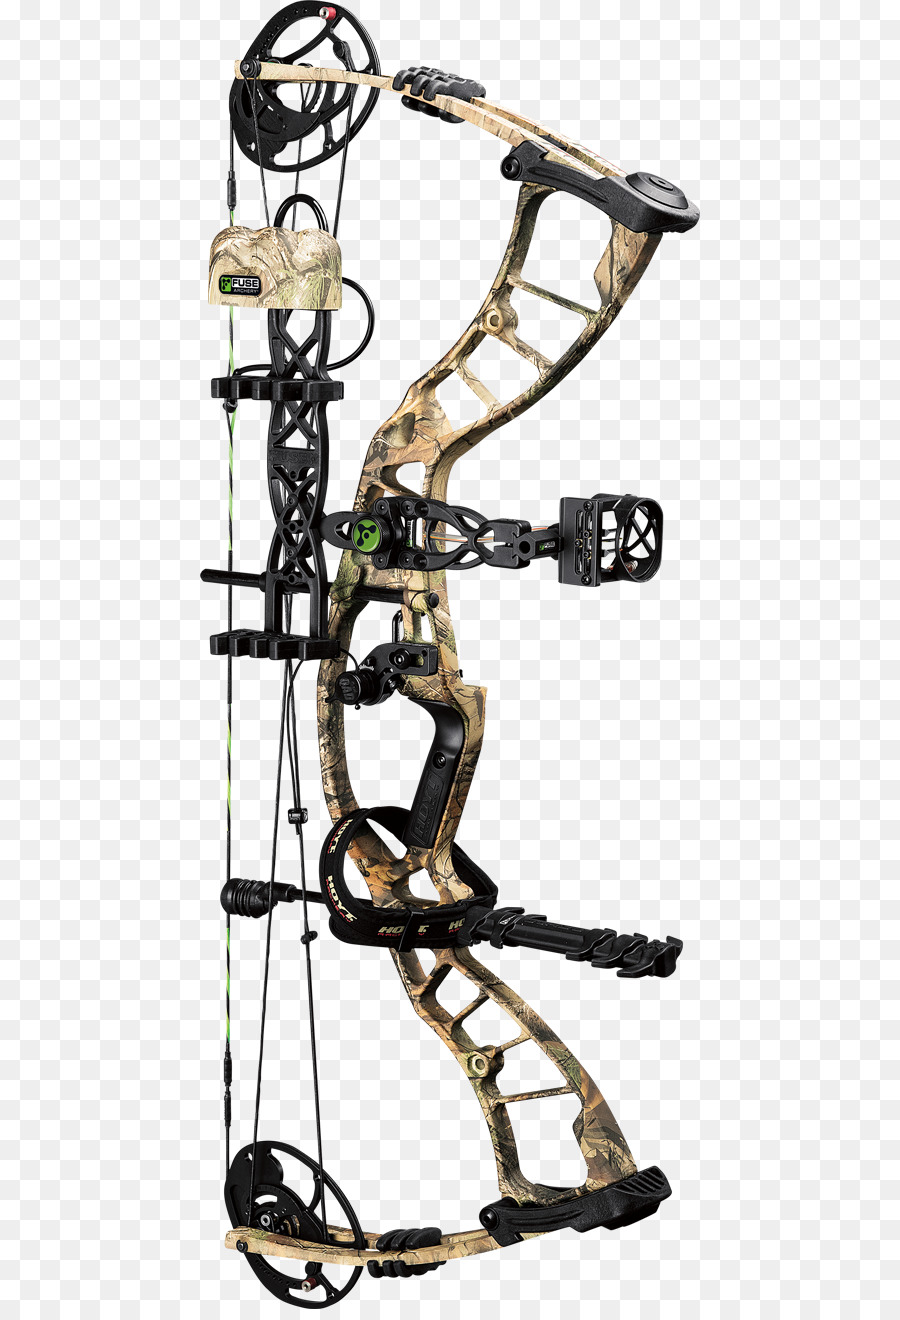 900x1320 Compound Bows Bow And Arrow Hoyt Archery Quiver